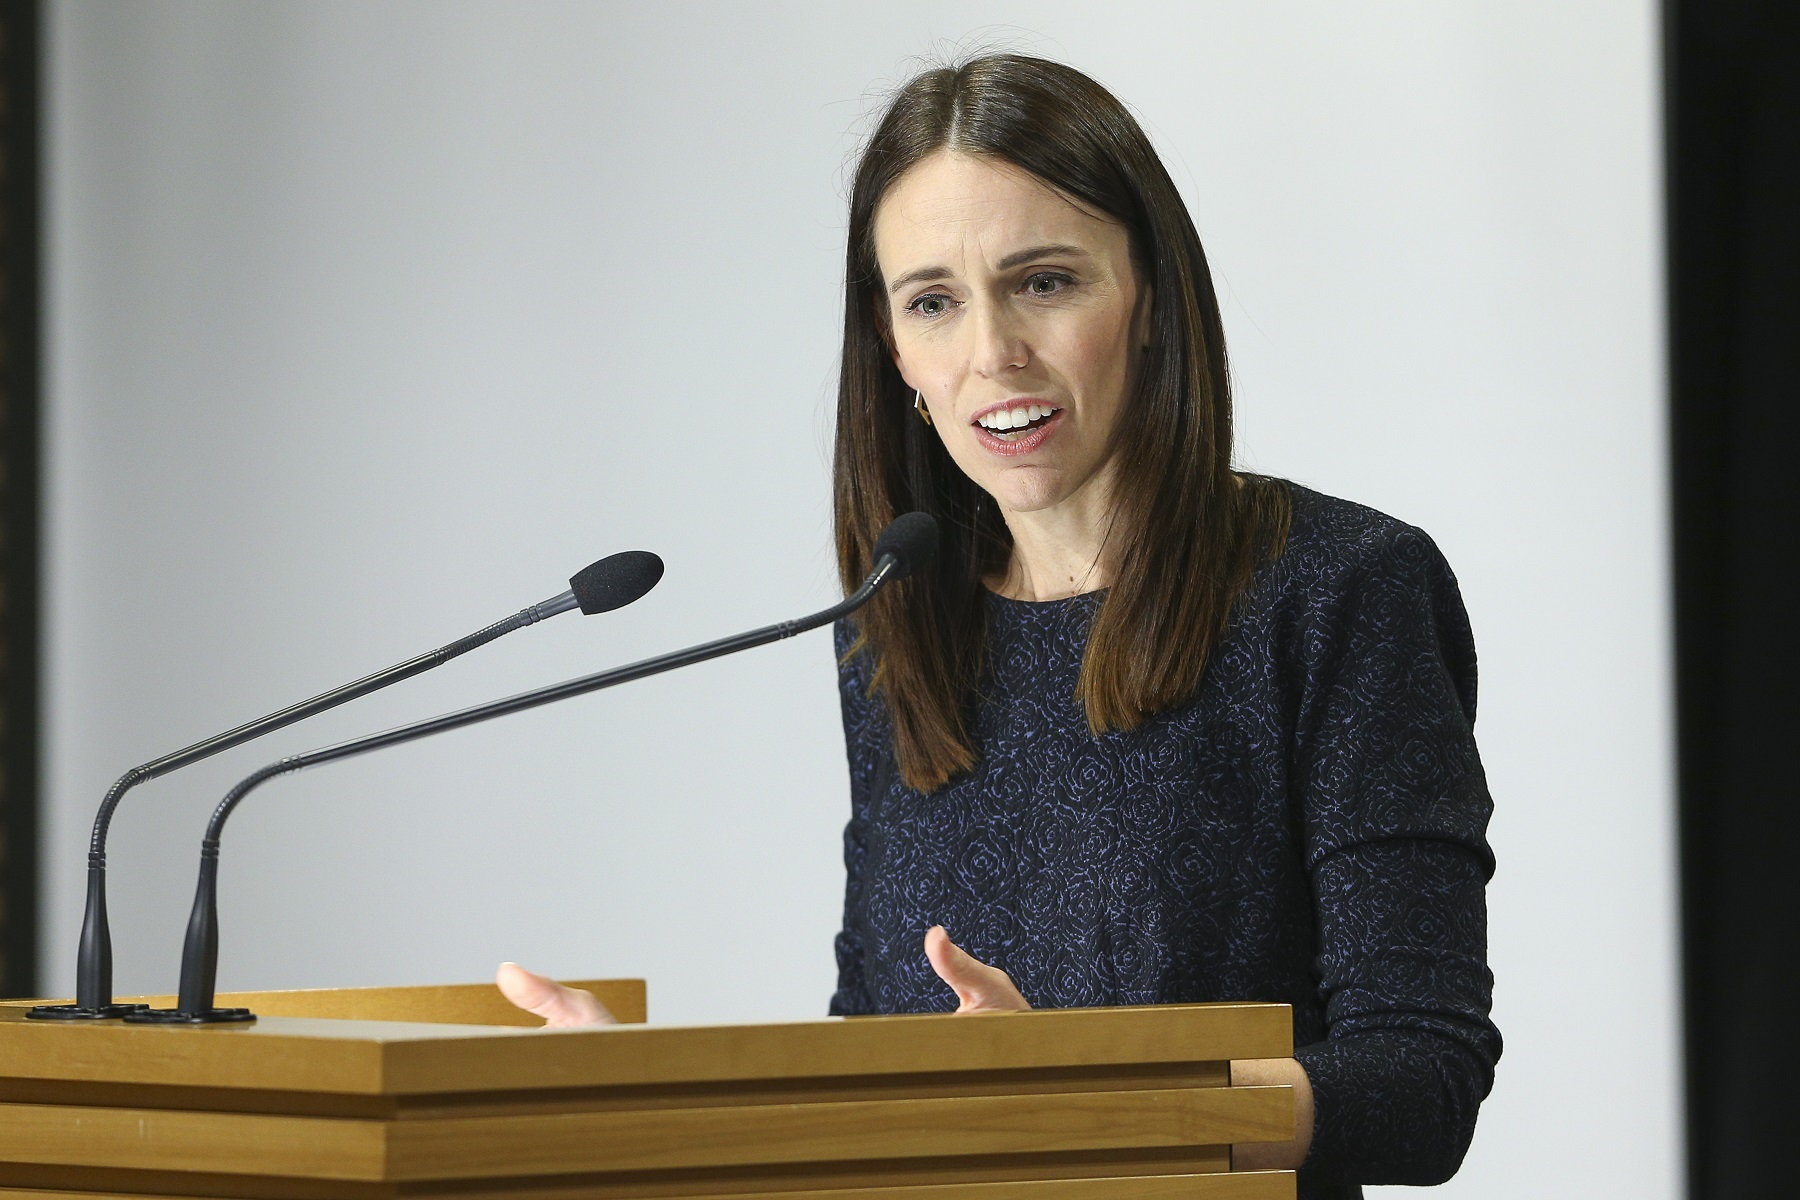 WELLINGTON, NEW ZEALAND - MARCH 31: Prime Minister Jacinda Ardern speaks to media during a press conference at Parliament on March 31, 2020 in Wellington, New Zealand. New Zealand has been in lockdown since Thursday 26 March following tough restrictions imposed by the government to stop the spread of COVID-19 across the country.  A State of National Emergency is in place along with an Epidemic Notice to help ensure the continuity of essential Government business. Under the COVID-19 Alert Level Four measures, all non-essential businesses are closed, including bars, restaurants, cinemas and playgrounds. Schools are closed and all indoor and outdoor events are banned. Essential services will remain open, including supermarkets and pharmacies. Lockdown measures are expected to remain in place for around four weeks, with Prime Minister Jacinda Ardern warning there will be zero tolerance for people ignoring the restrictions, with police able to enforce them if required. New Zealand now has over 500 confirmed cases of COVID-19 while one person has died. (Photo by Hagen Hopkins - Pool/Getty Images)